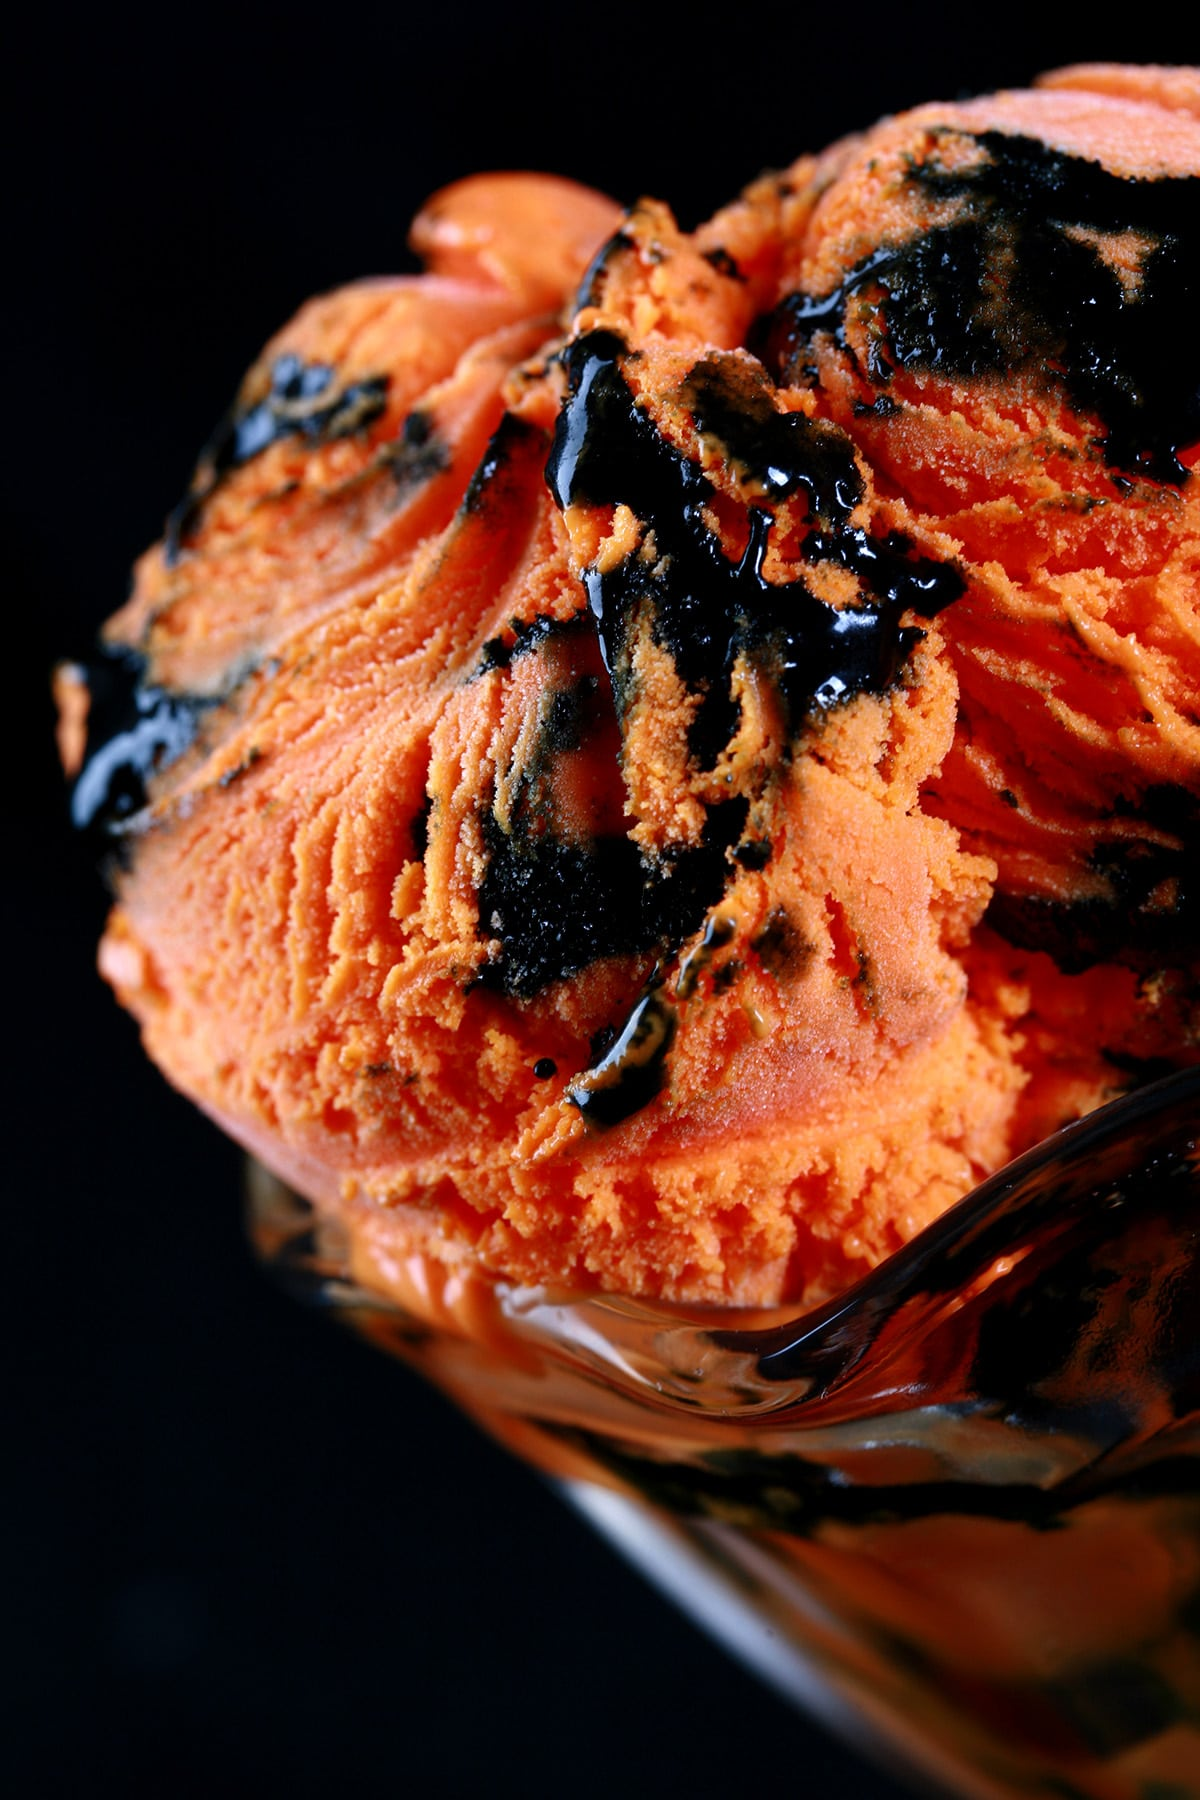 A fluted glass dessert bowl with 2 big scoops of Tiger Tail Ice Cream - Orange ice cream with a licorice ribbon throughout.